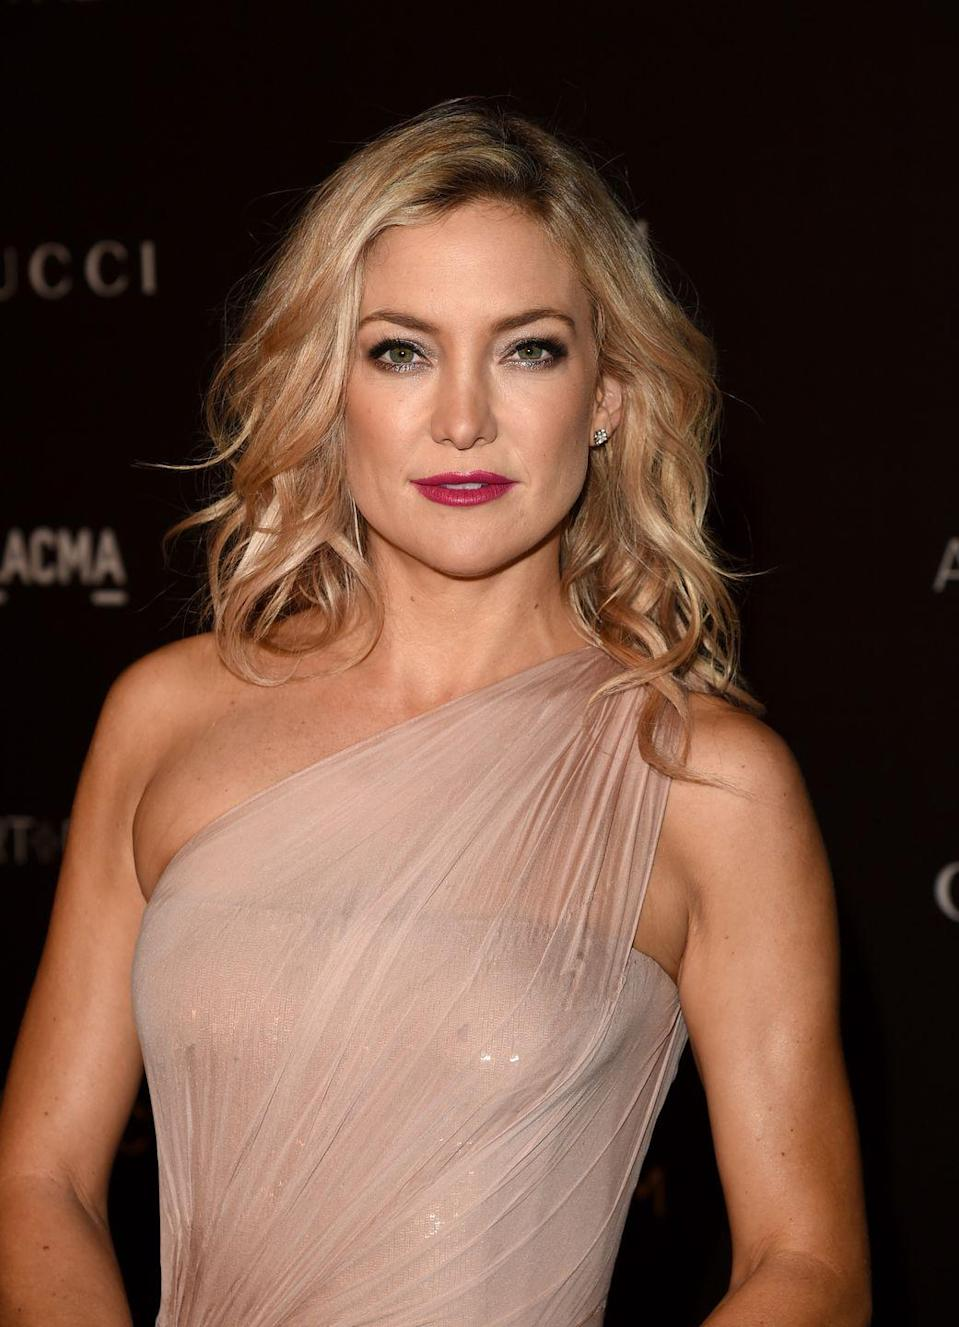 <p>It was anything but heaven for Kate Hudson when the actress appeared in the flop <em>A Little Bit of Heaven</em>. The filmed was panned by critics and moviegoers alike. </p>